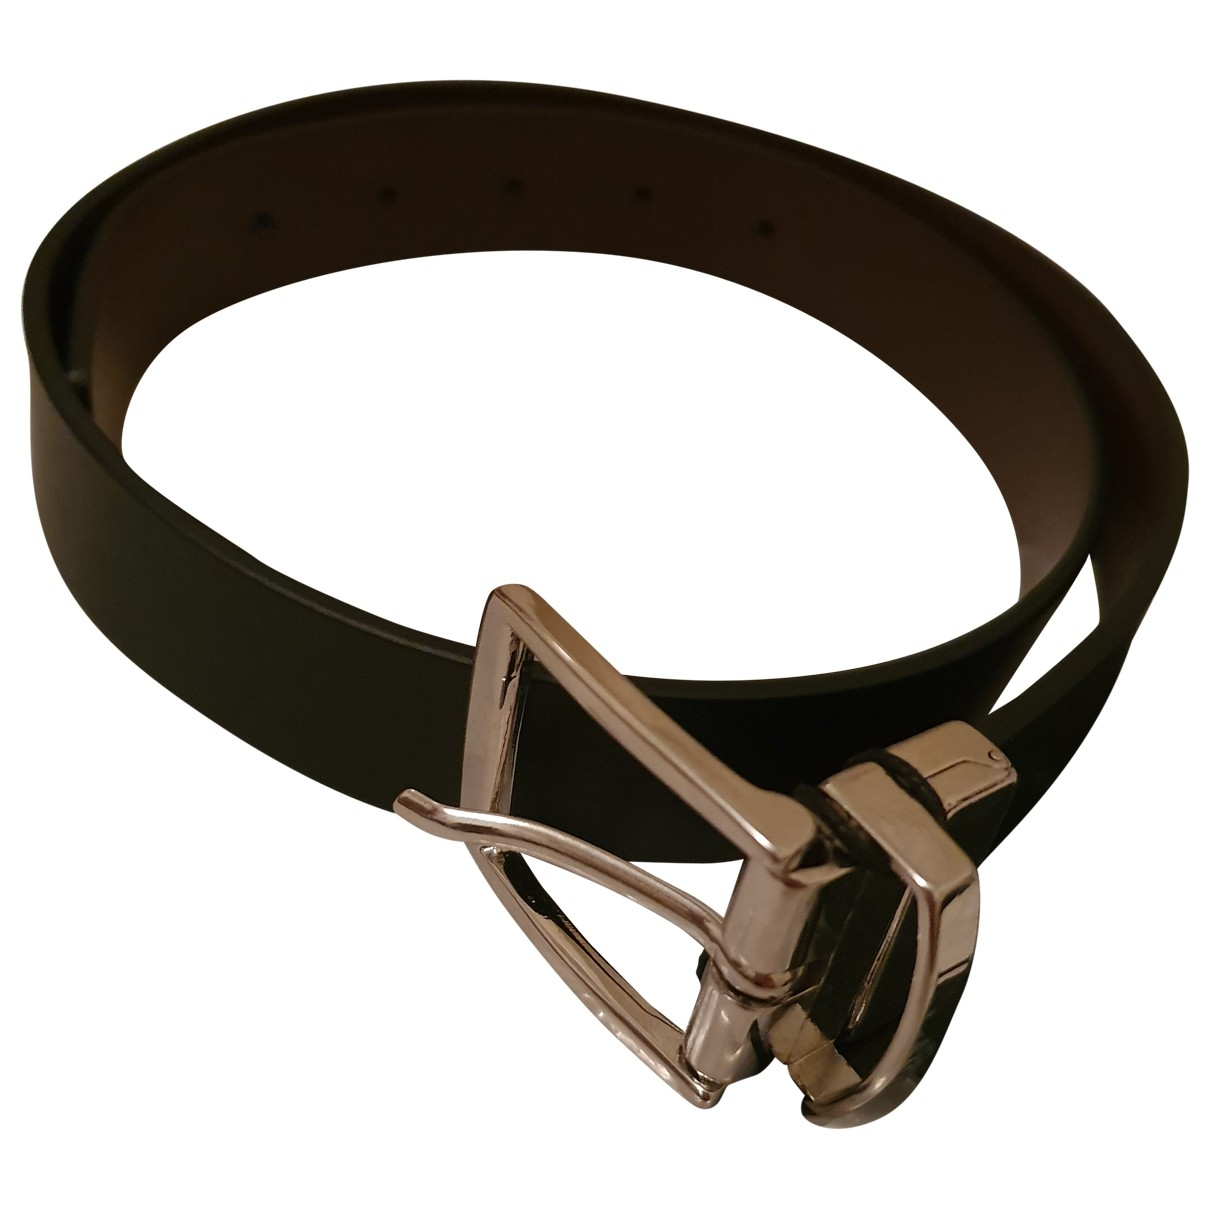 Emporio Armani \N Black Leather belt.Suspenders for Kids \N